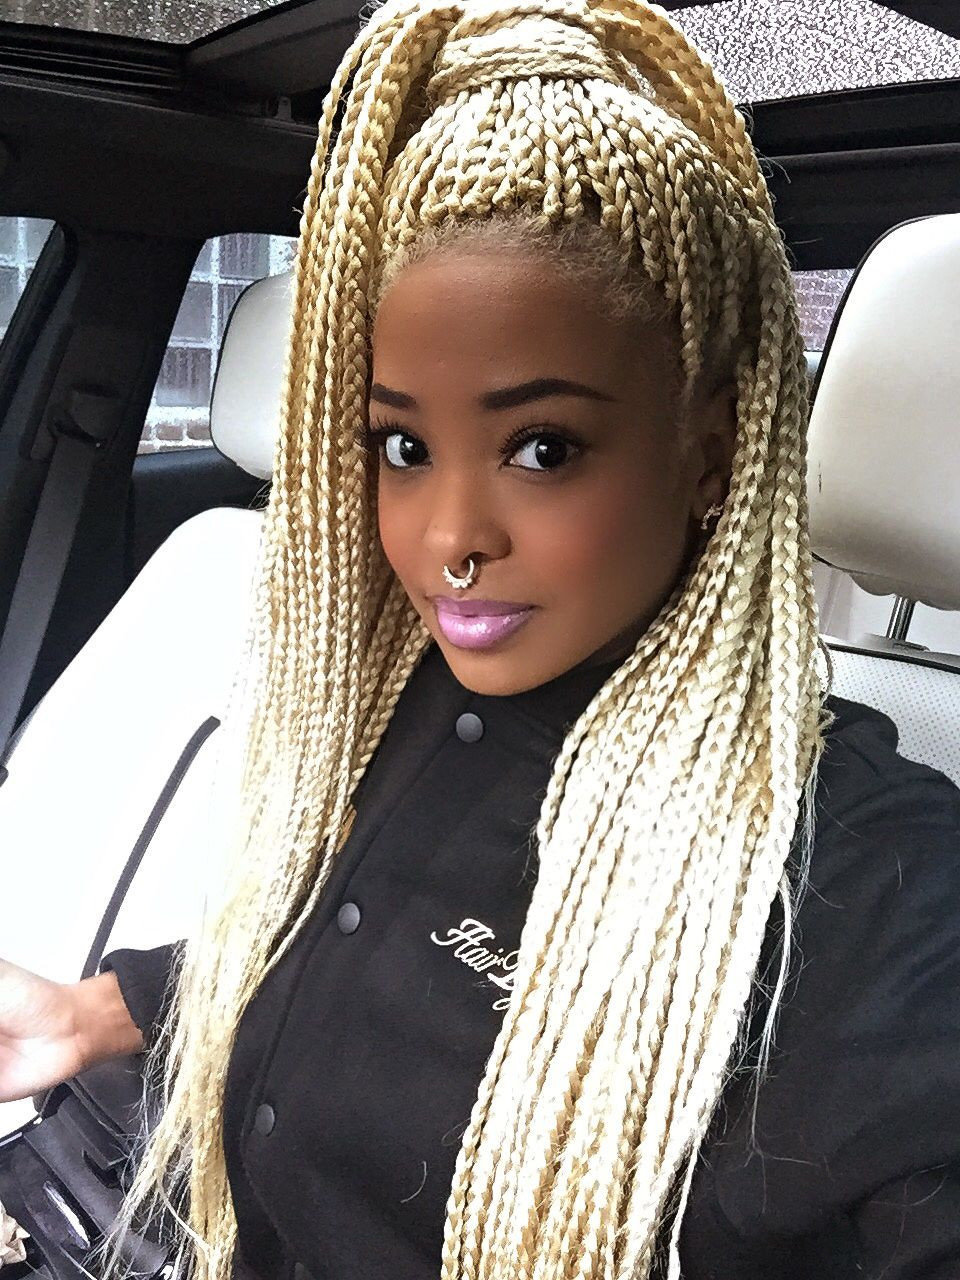 Mid-Size-Blonde-Poetic-Justice-Braid Poetic Justice Braids to Flaunt Your Fabulous Look